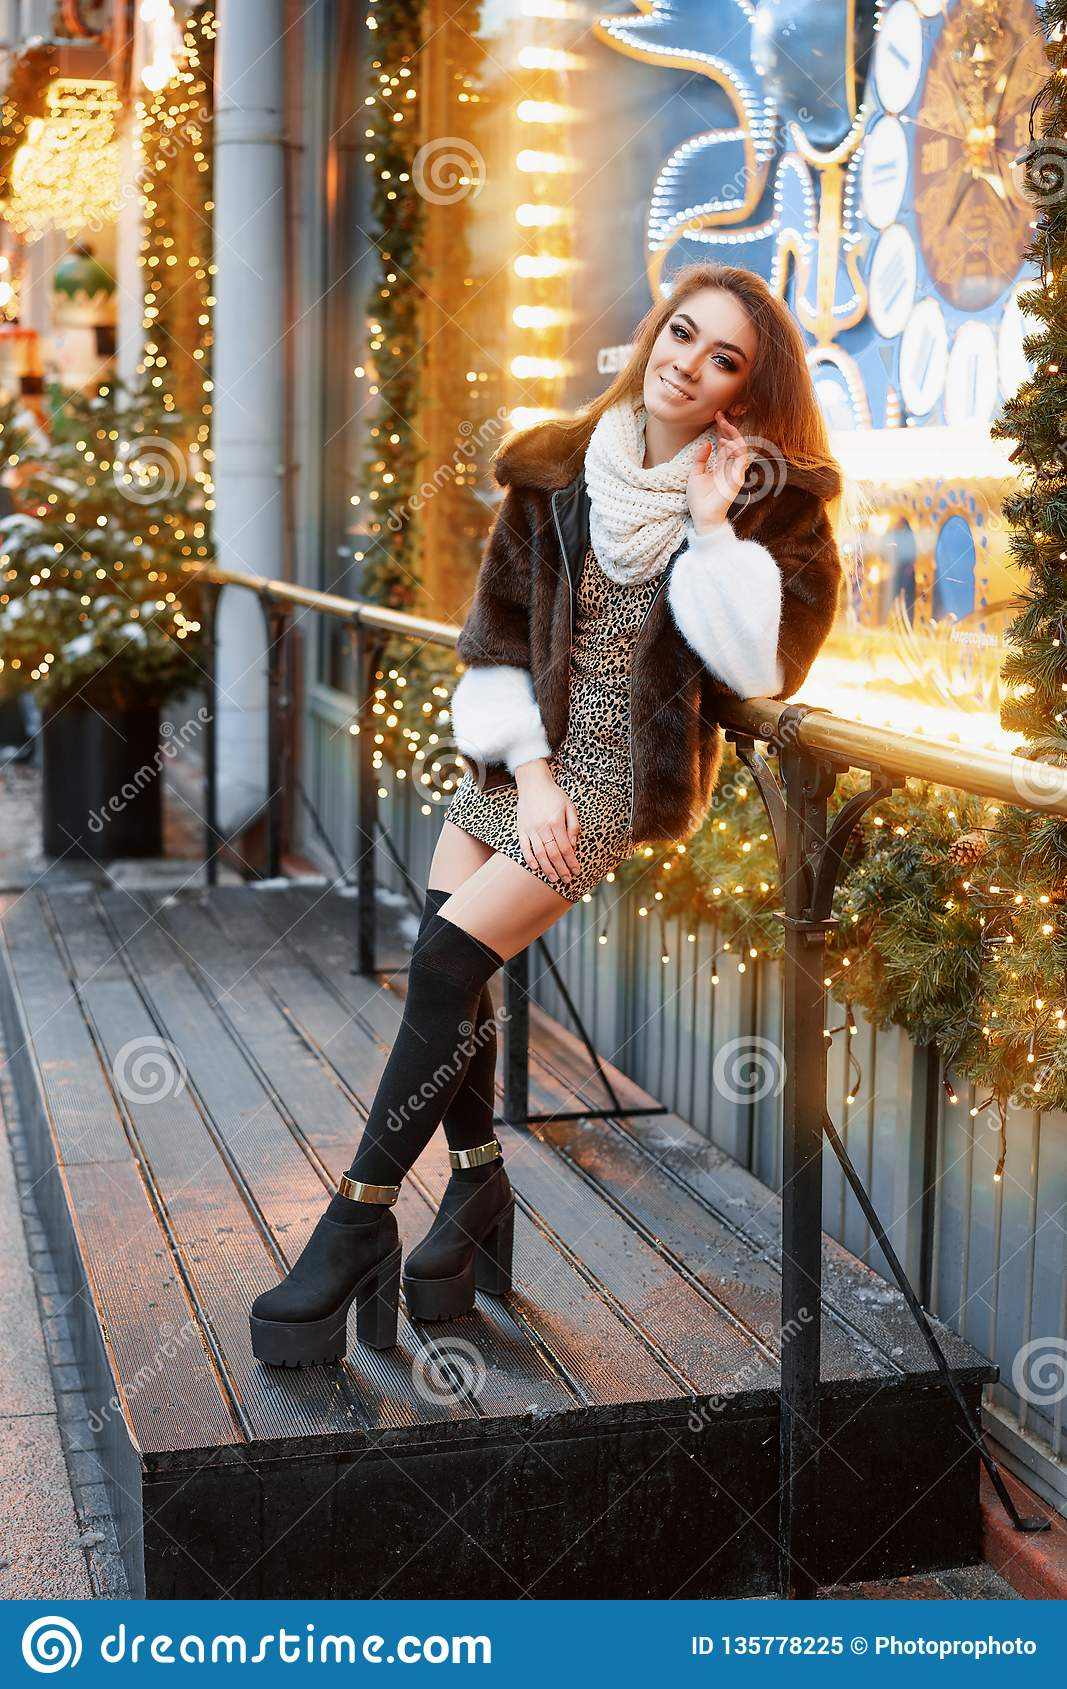 Portrait of a beautiful young woman who poses on the street near the elegantly decorated Christmas window, festive mood